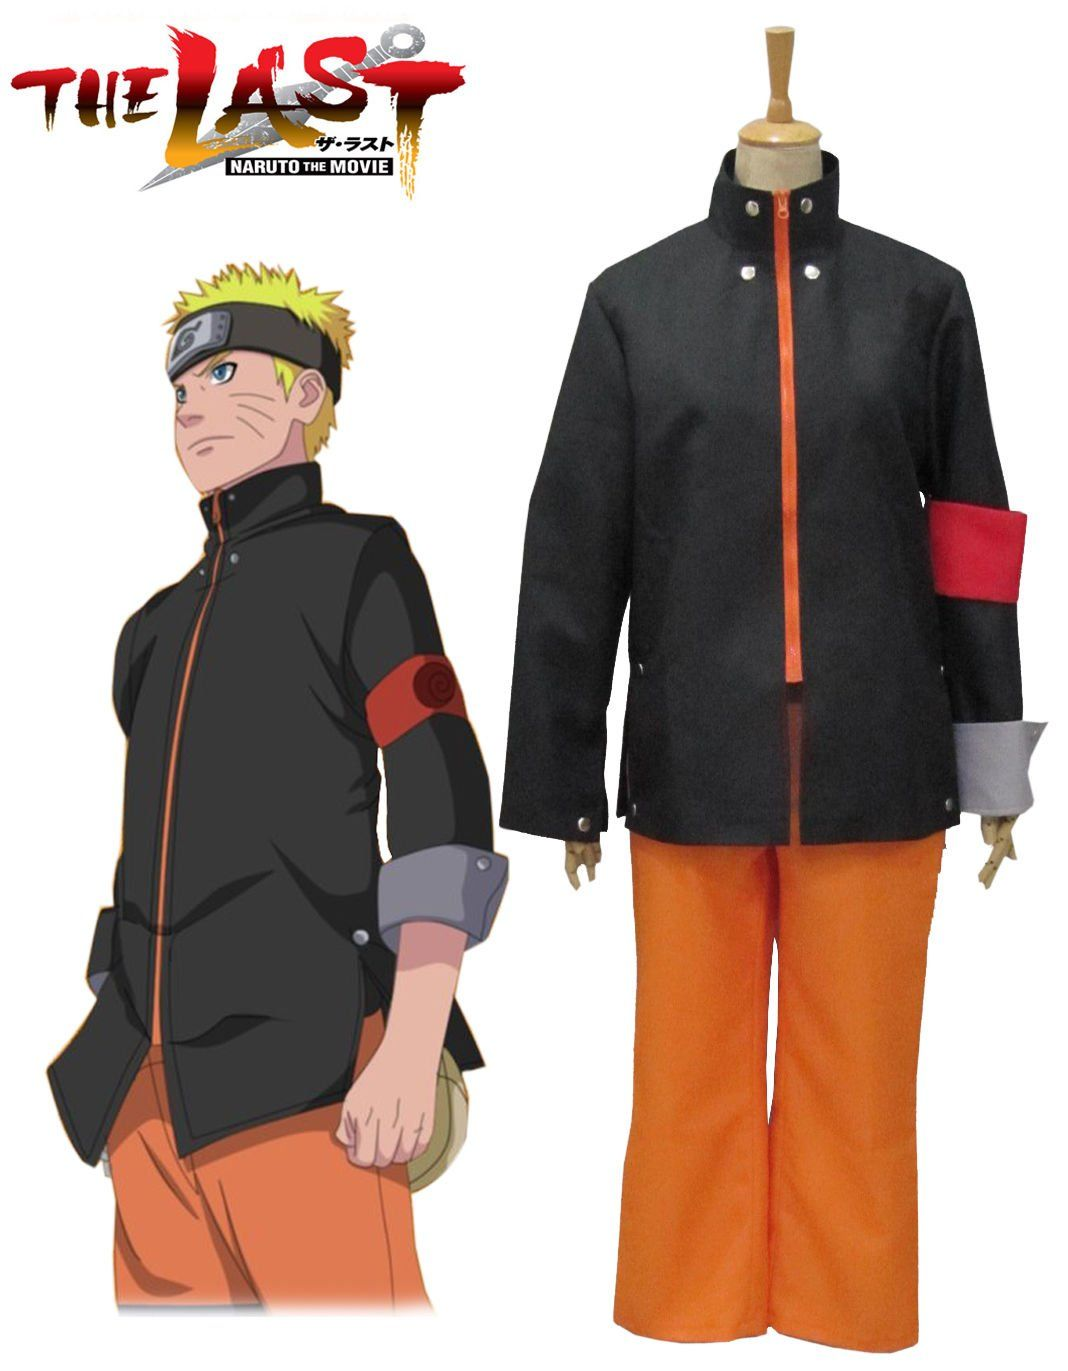 Novelty & Special Use Dependable Man Cosplay Anime Naruto The Last Shippuden Uzumaki Naruto Boruto Headband Cosplay Accessory For Halloween Party